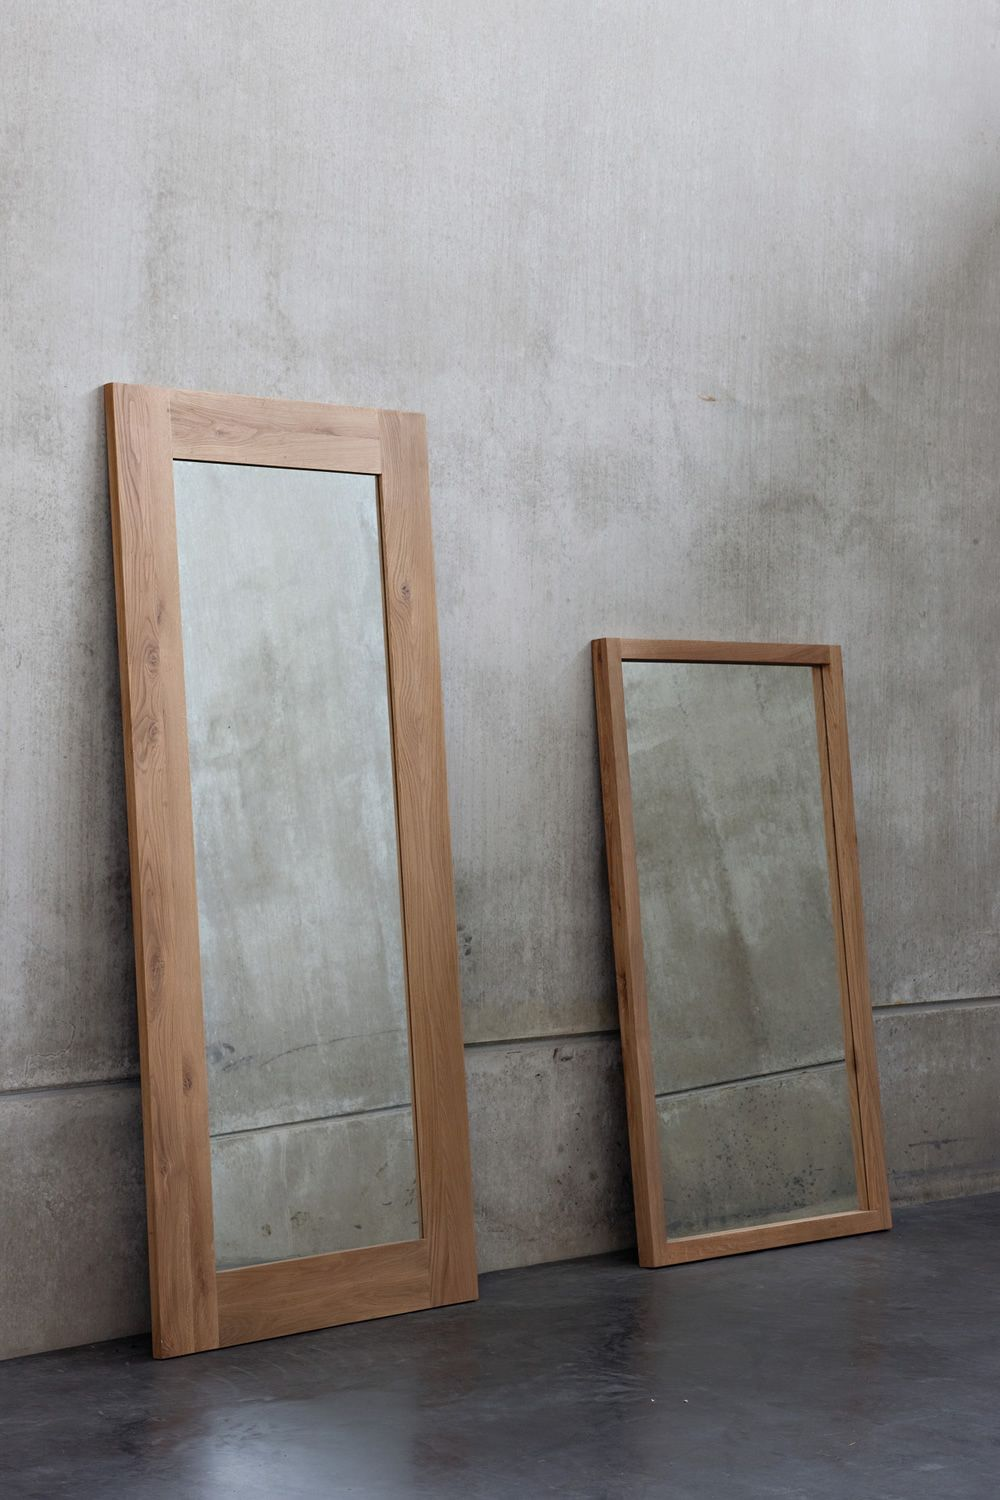 Mirror with oak frame, matched with LF mirror